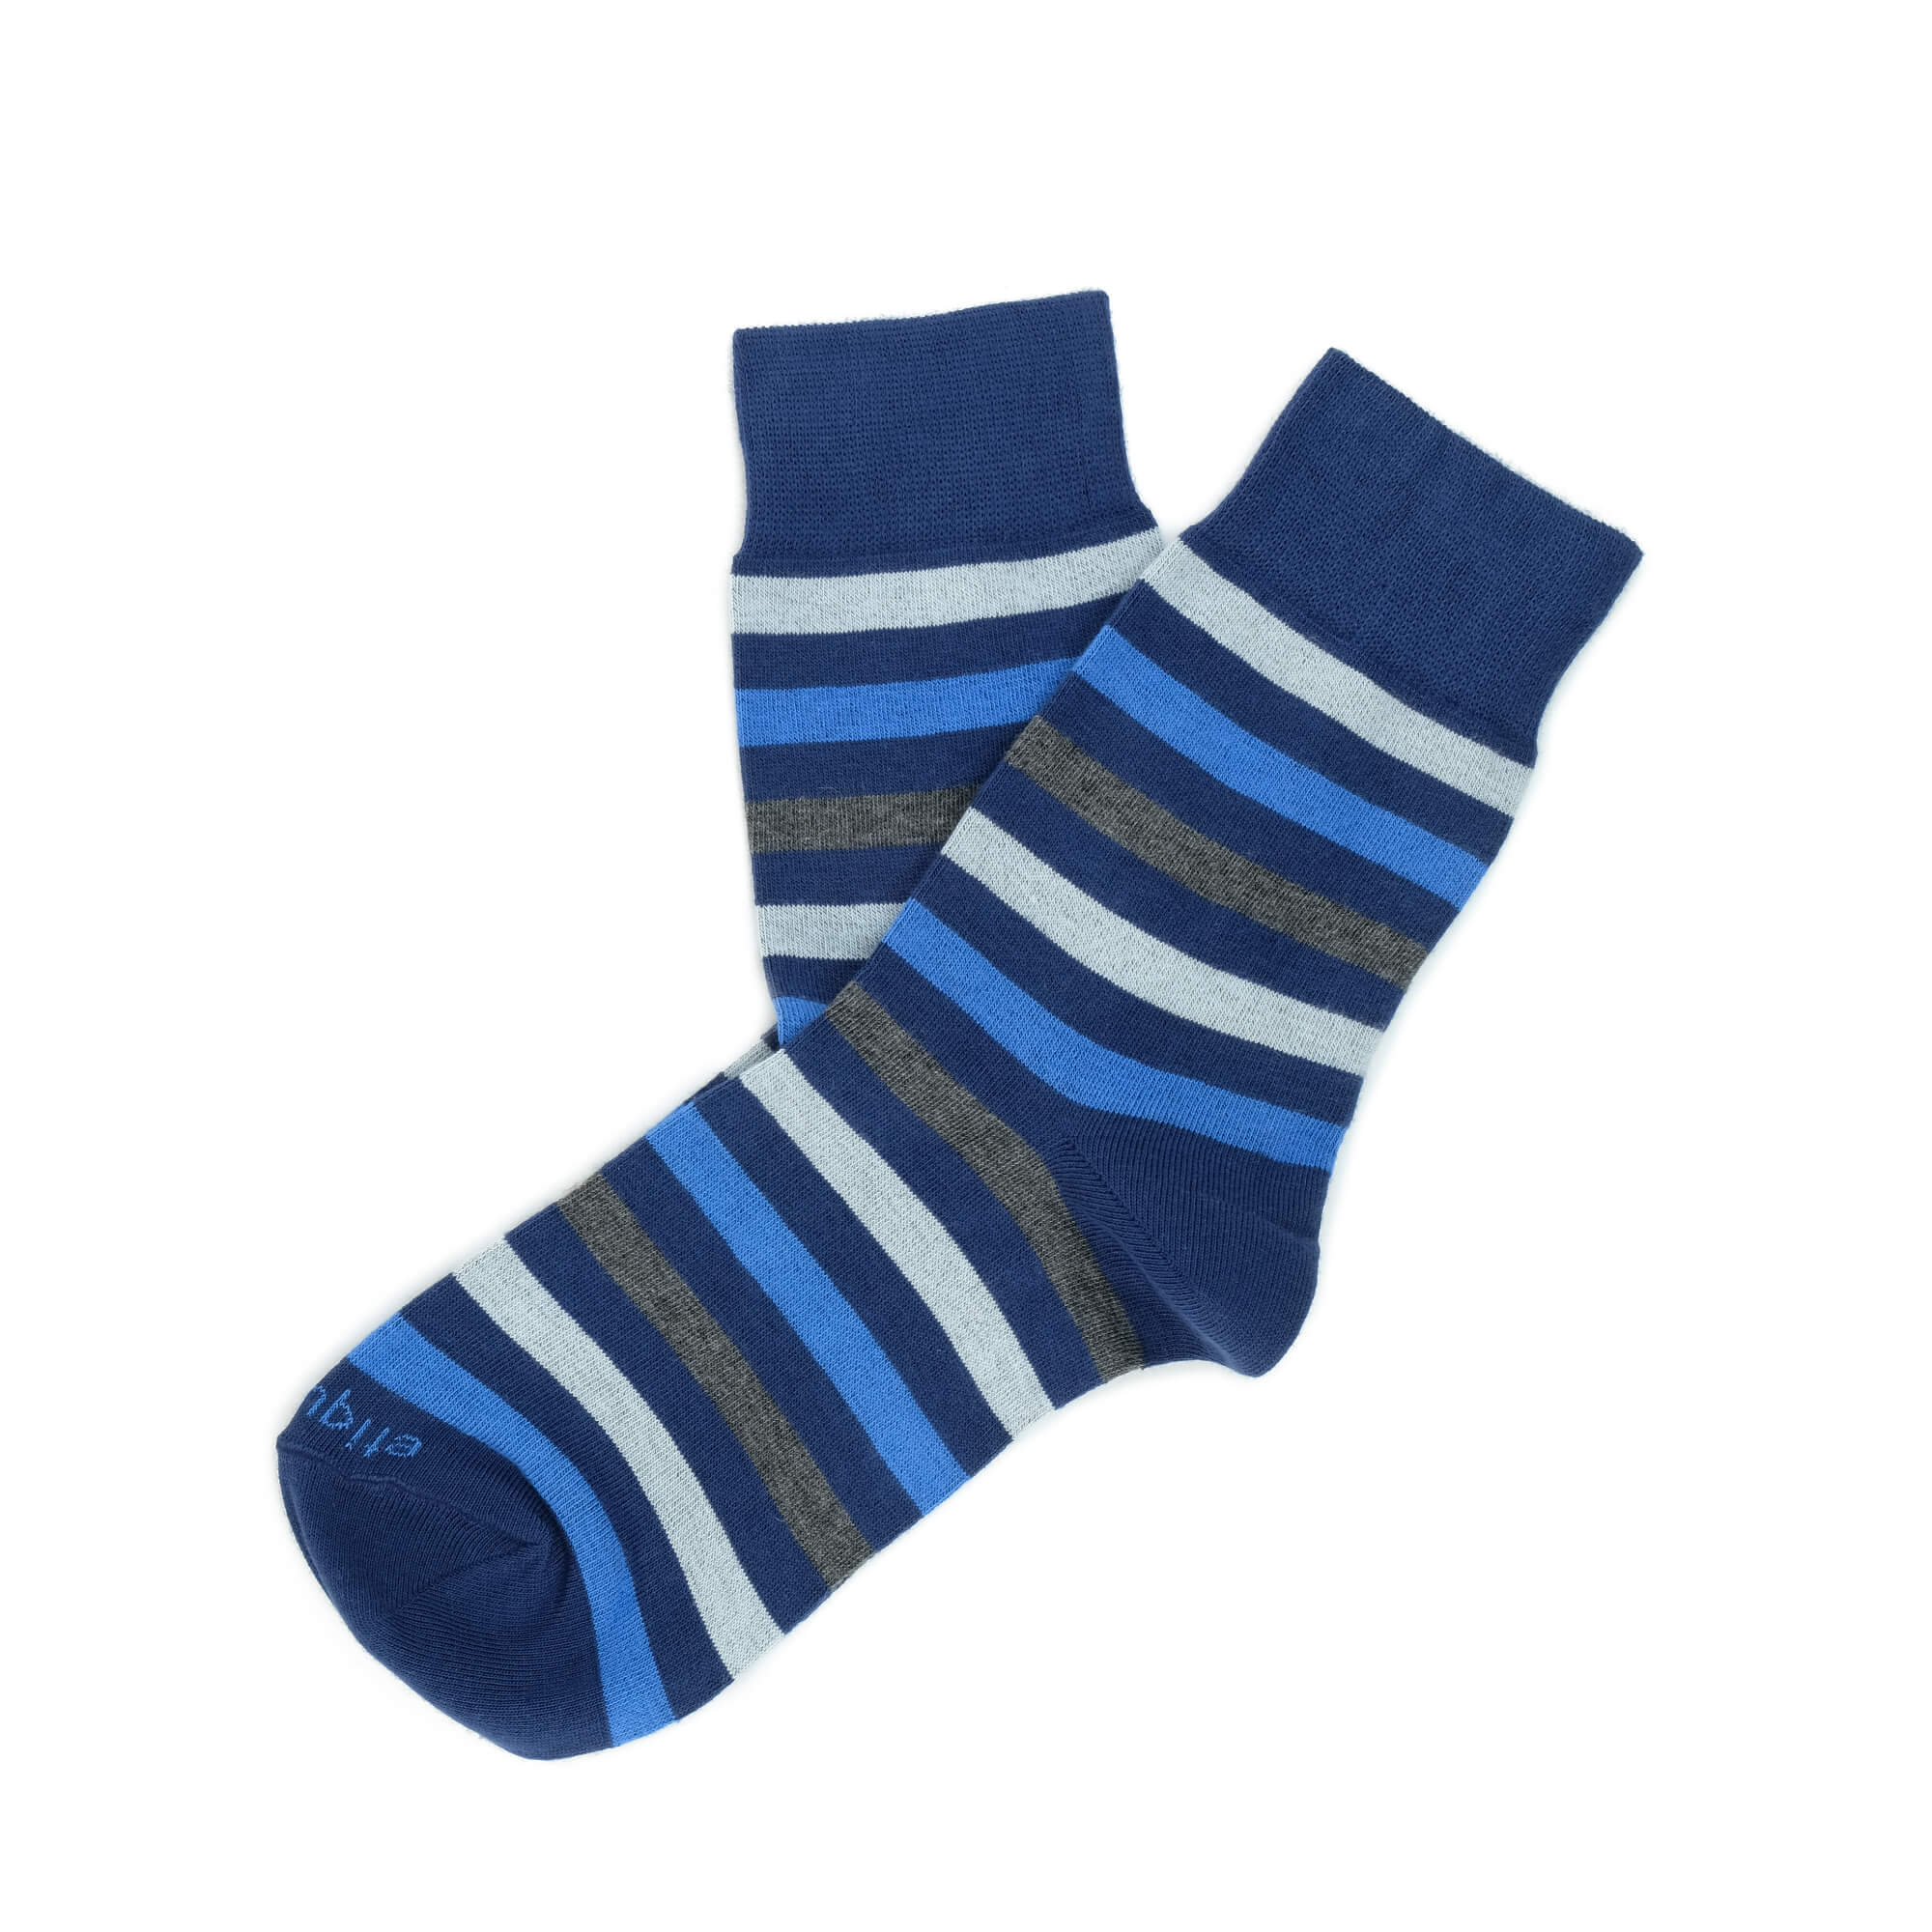 Womens Socks - Crosswalk Stripes Women's Socks - Blue⎪Etiquette Clothiers